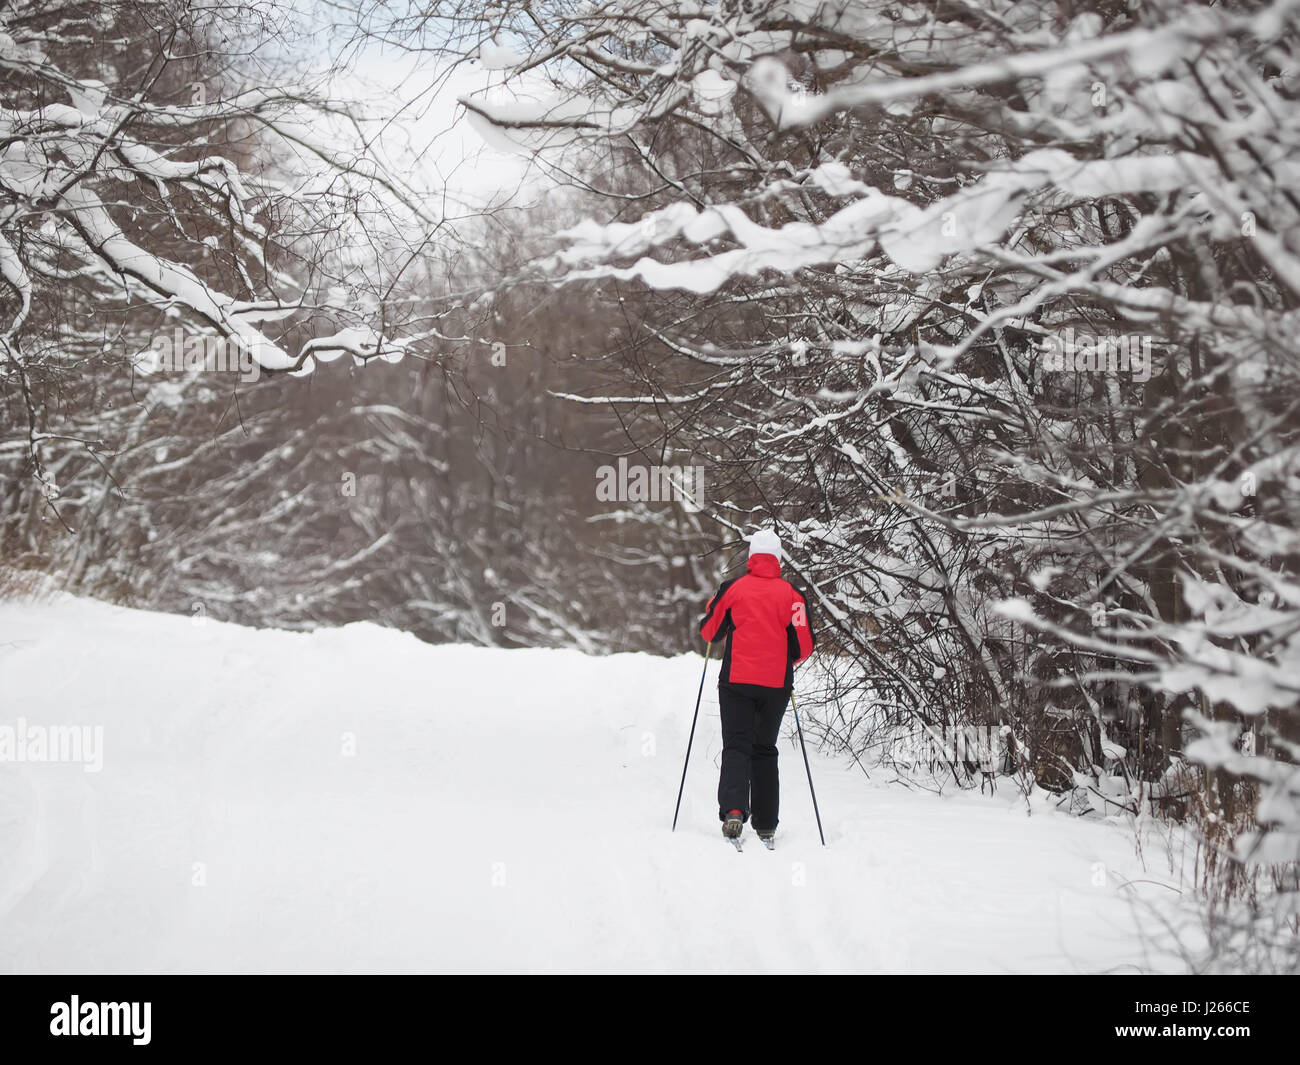 Skier in the forest - Stock Image